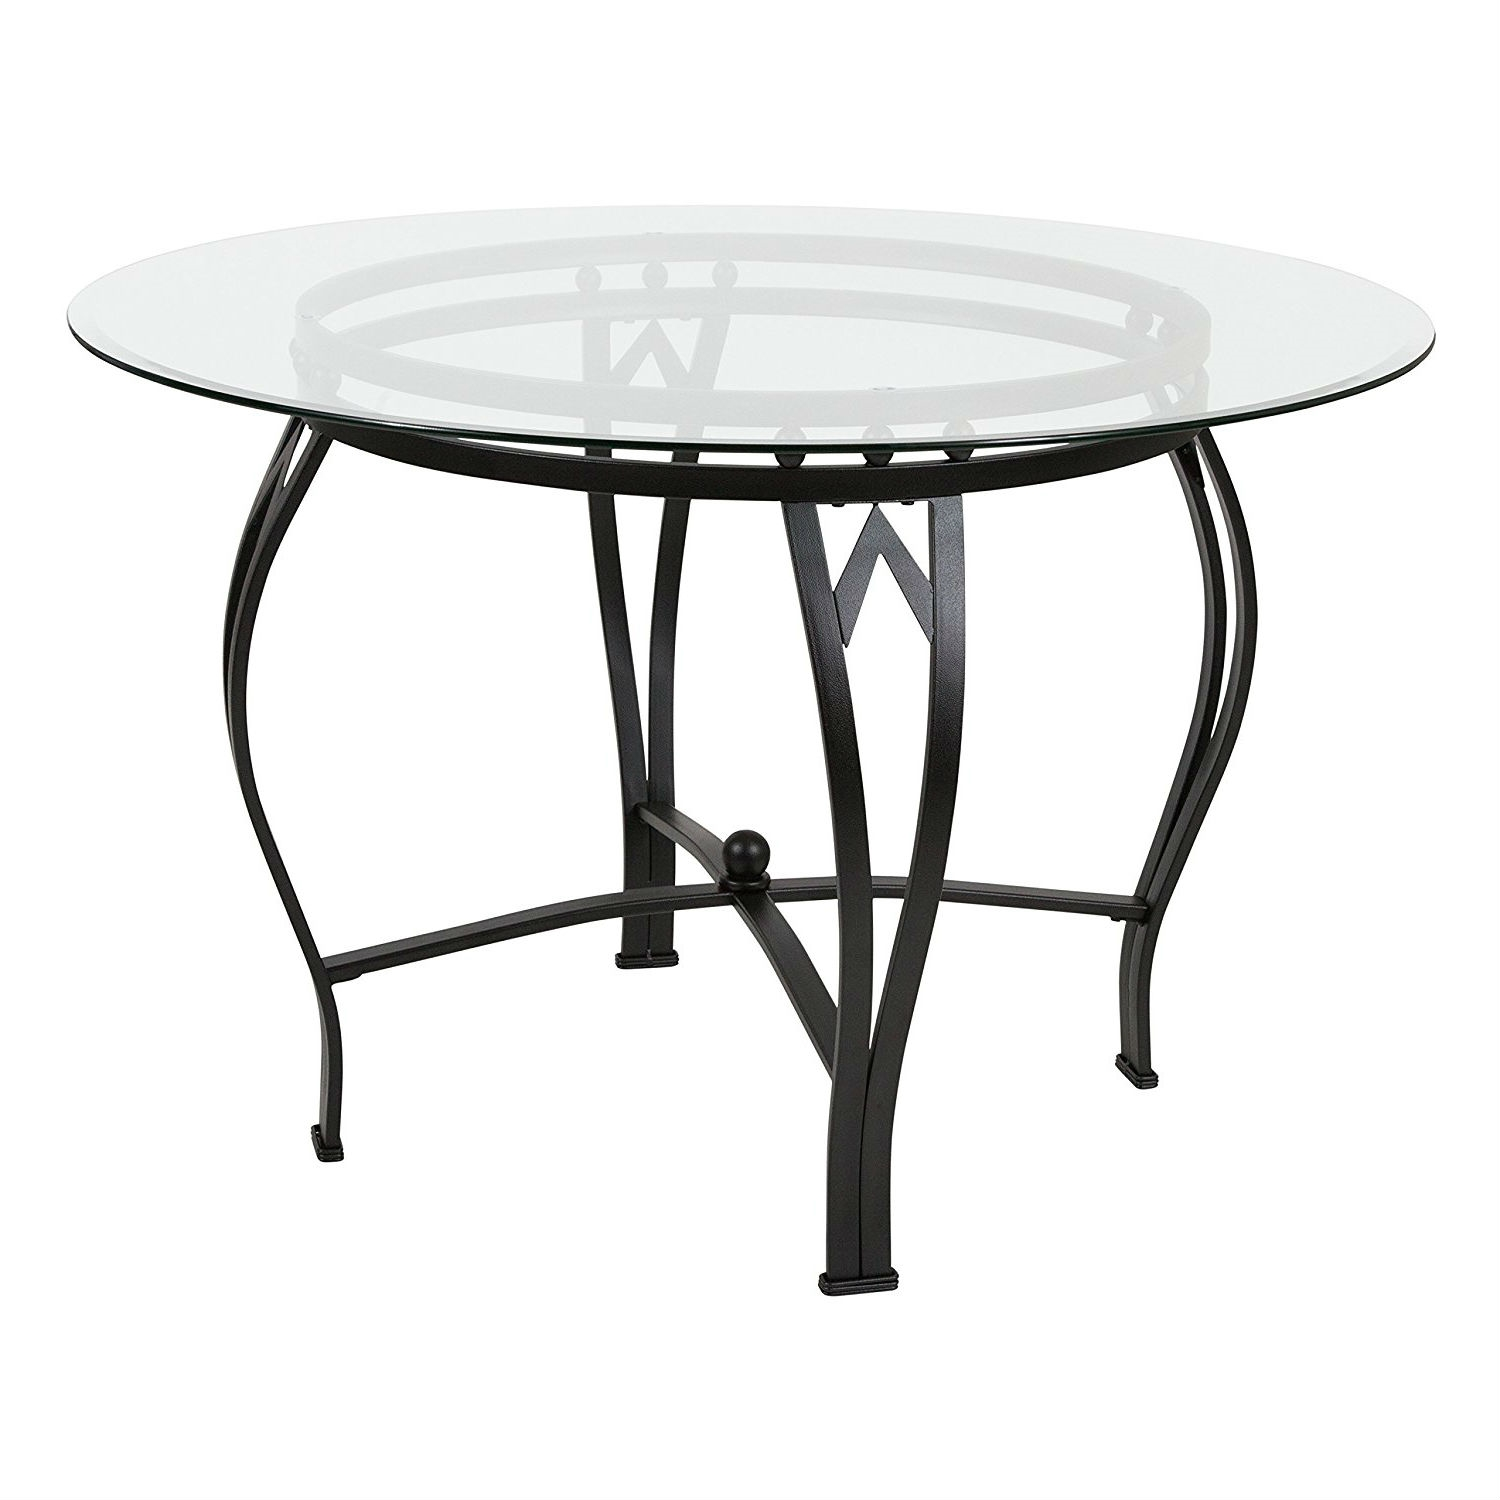 Round Glass Top Dining Table Modern 45 Inch Round Glass Top Dining Table With Black Metal Frame